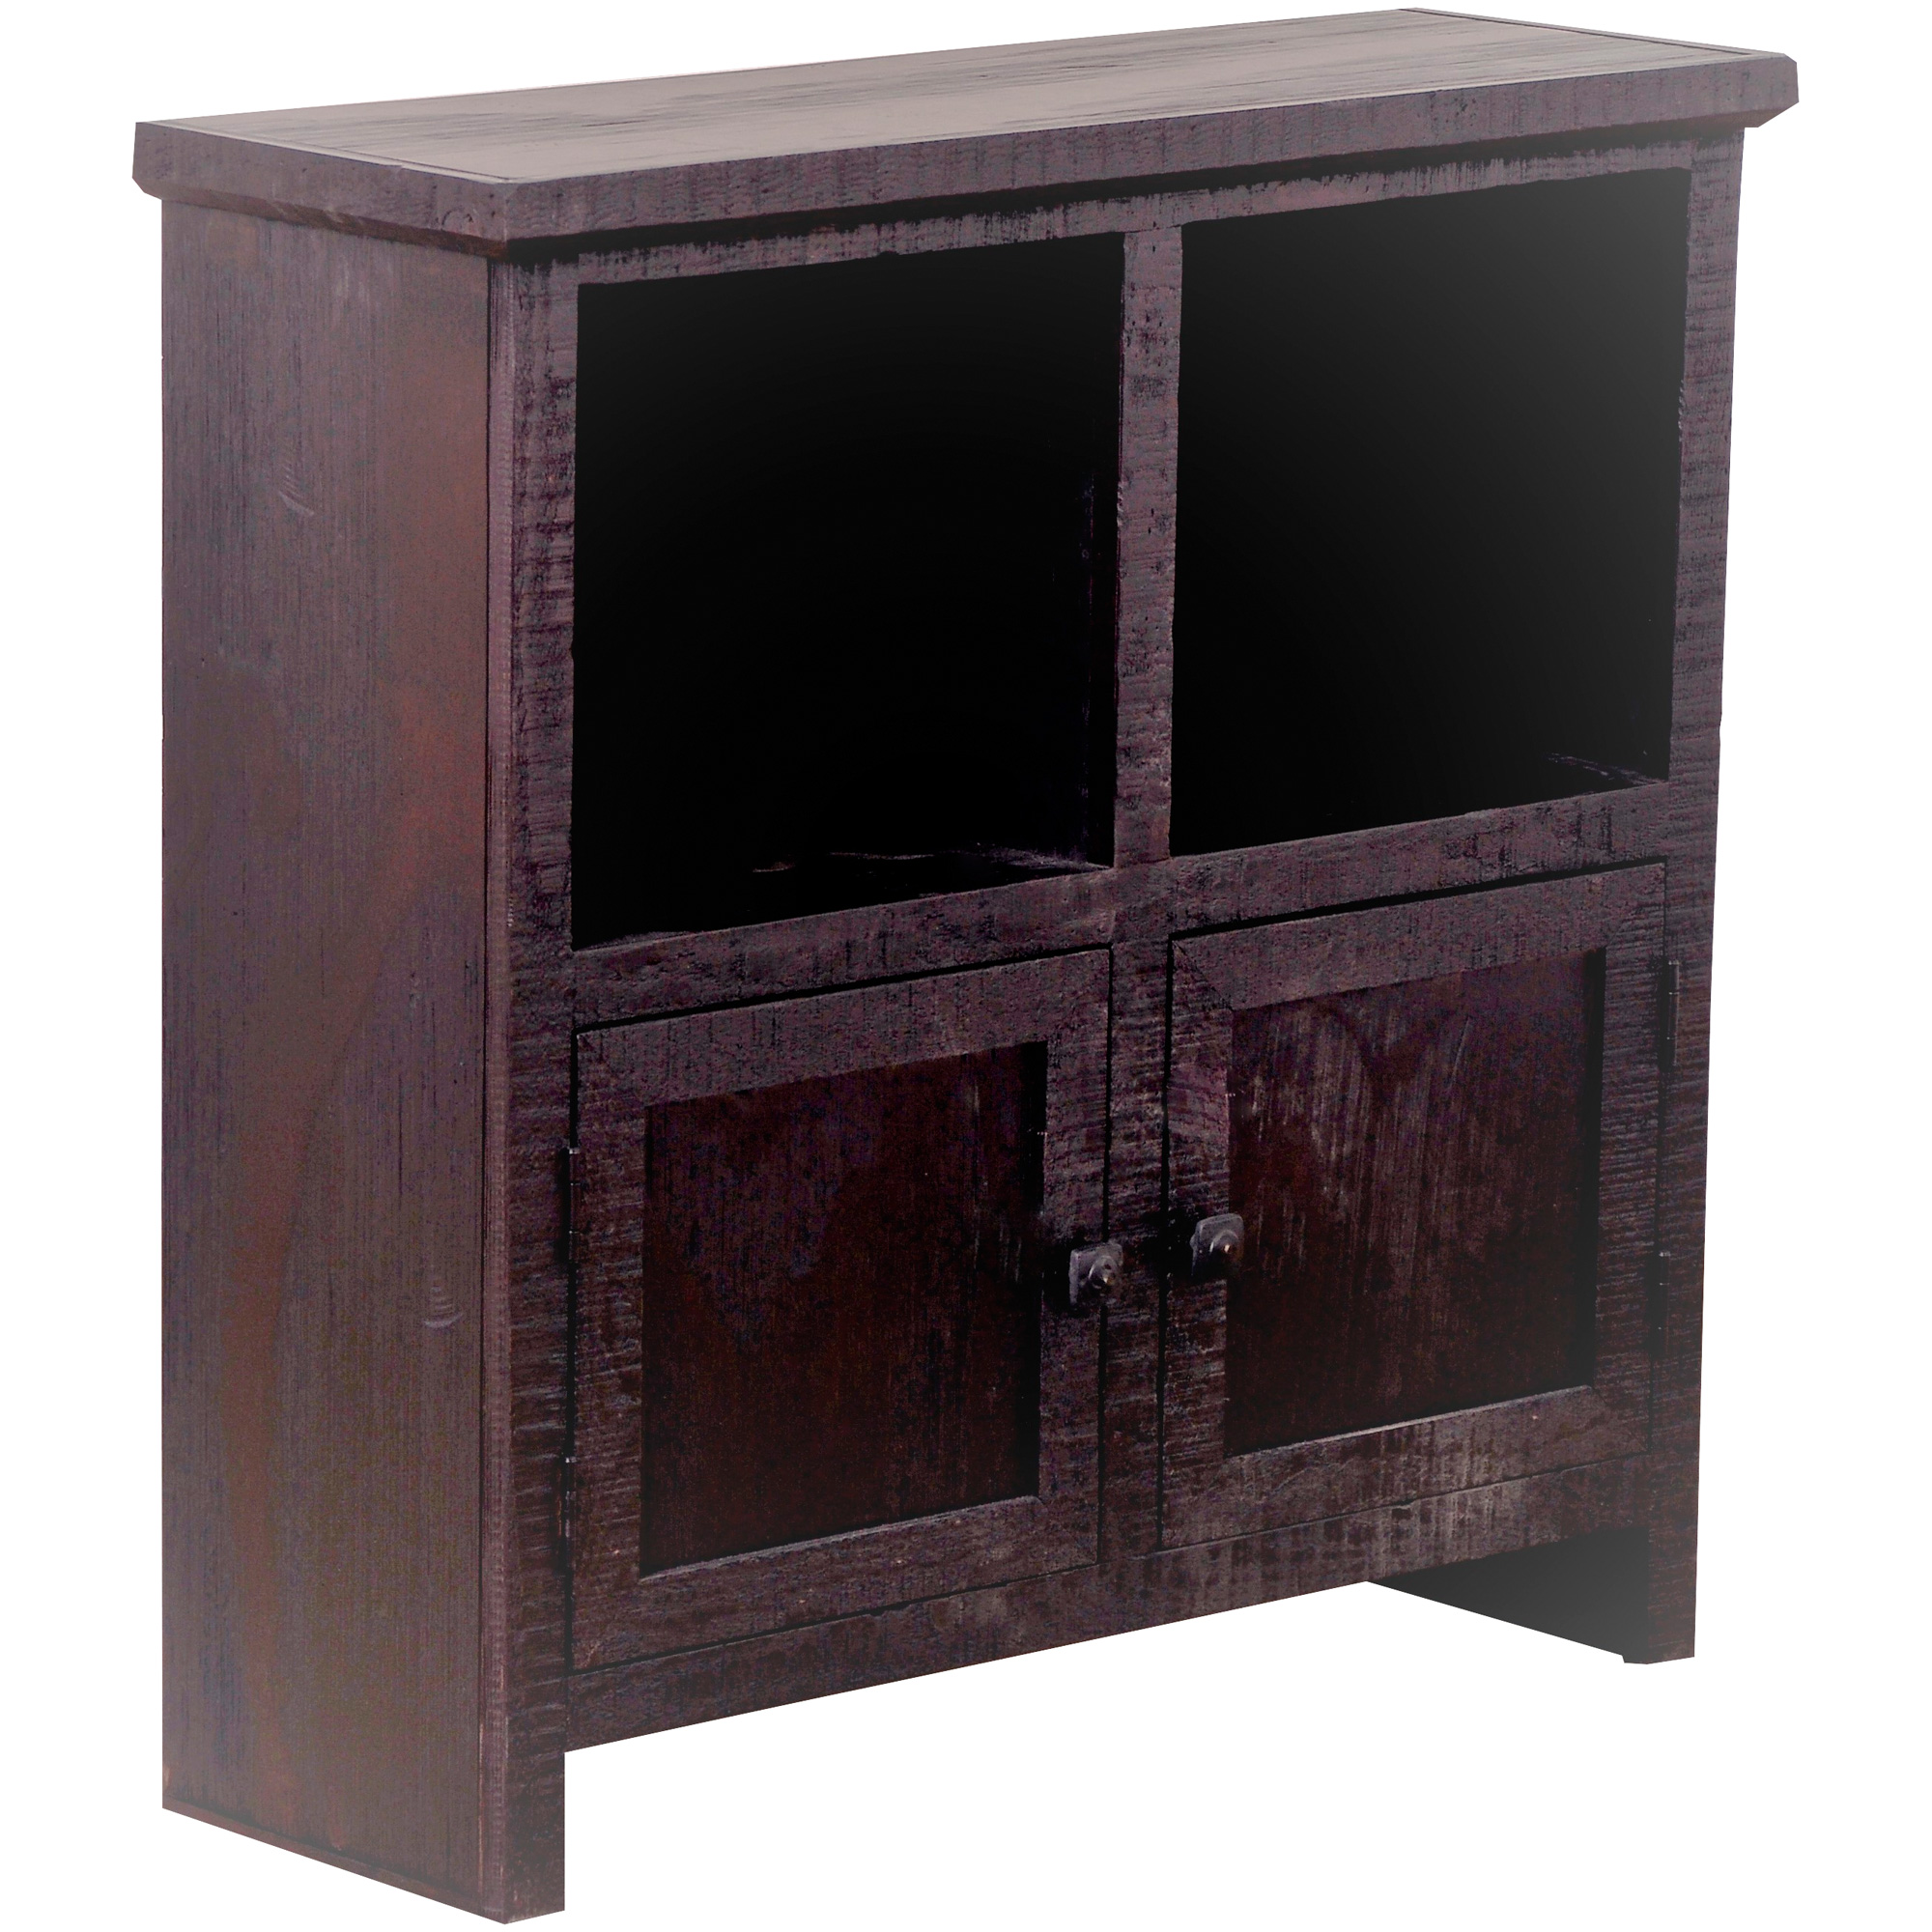 Kurio King | Fowler Espresso 2 Door Cabinet | Dark Brown